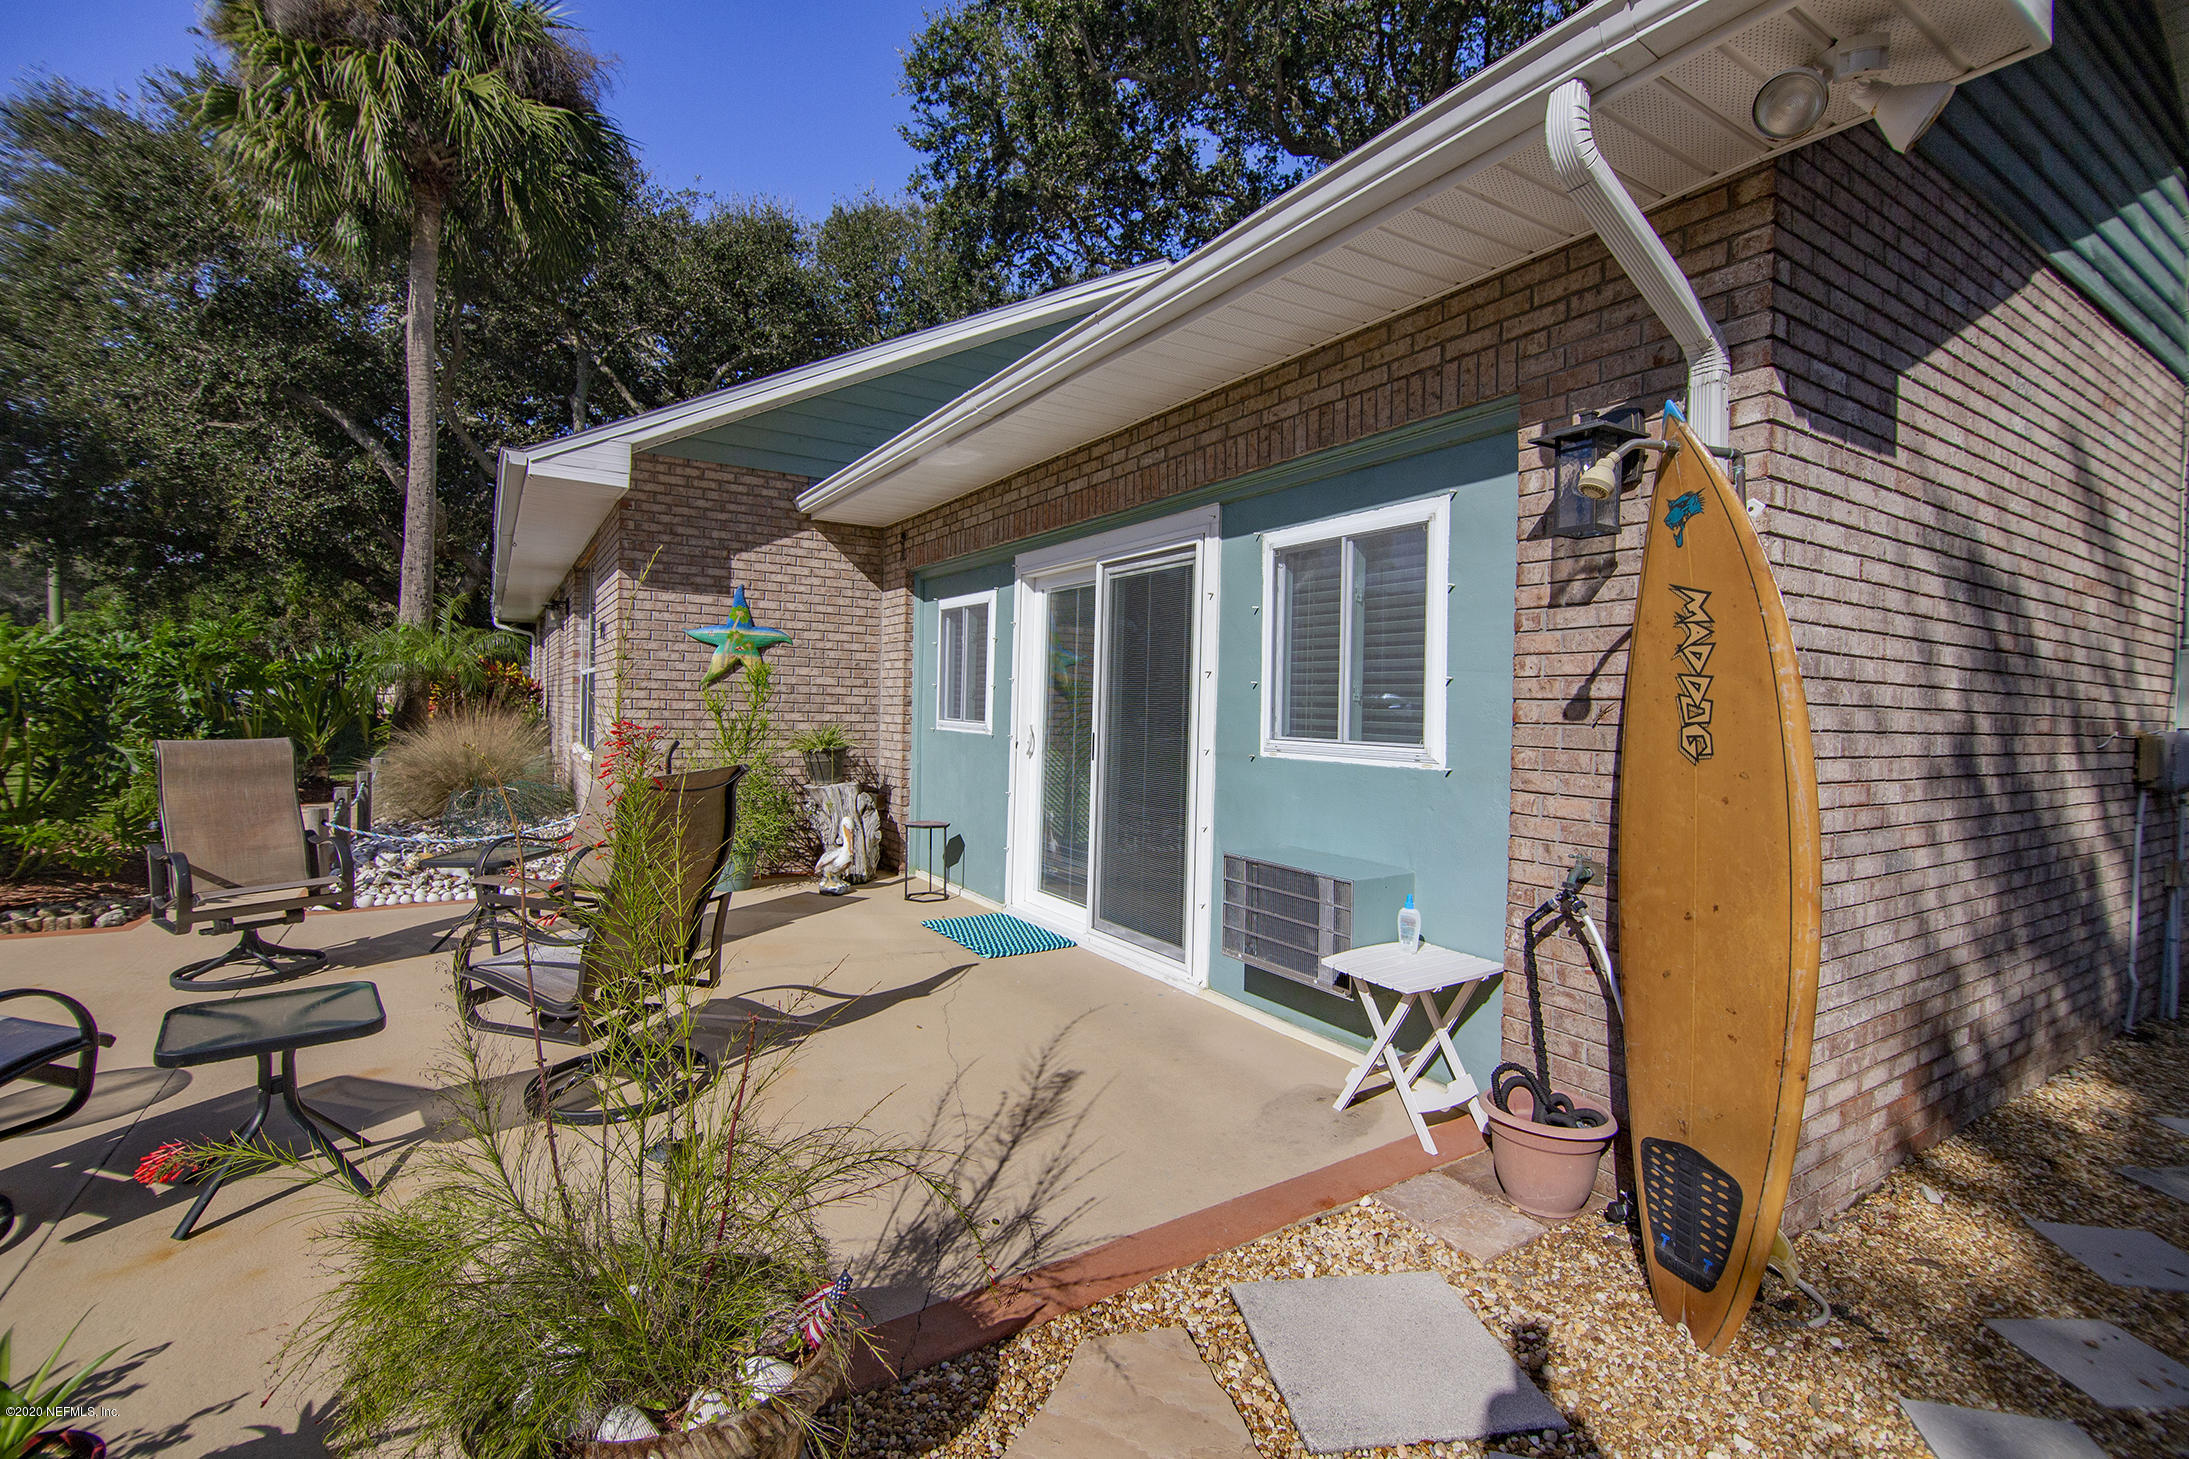 120 15TH, ST AUGUSTINE BEACH, FLORIDA 32080, 3 Bedrooms Bedrooms, ,2 BathroomsBathrooms,Residential,For sale,15TH,1082391